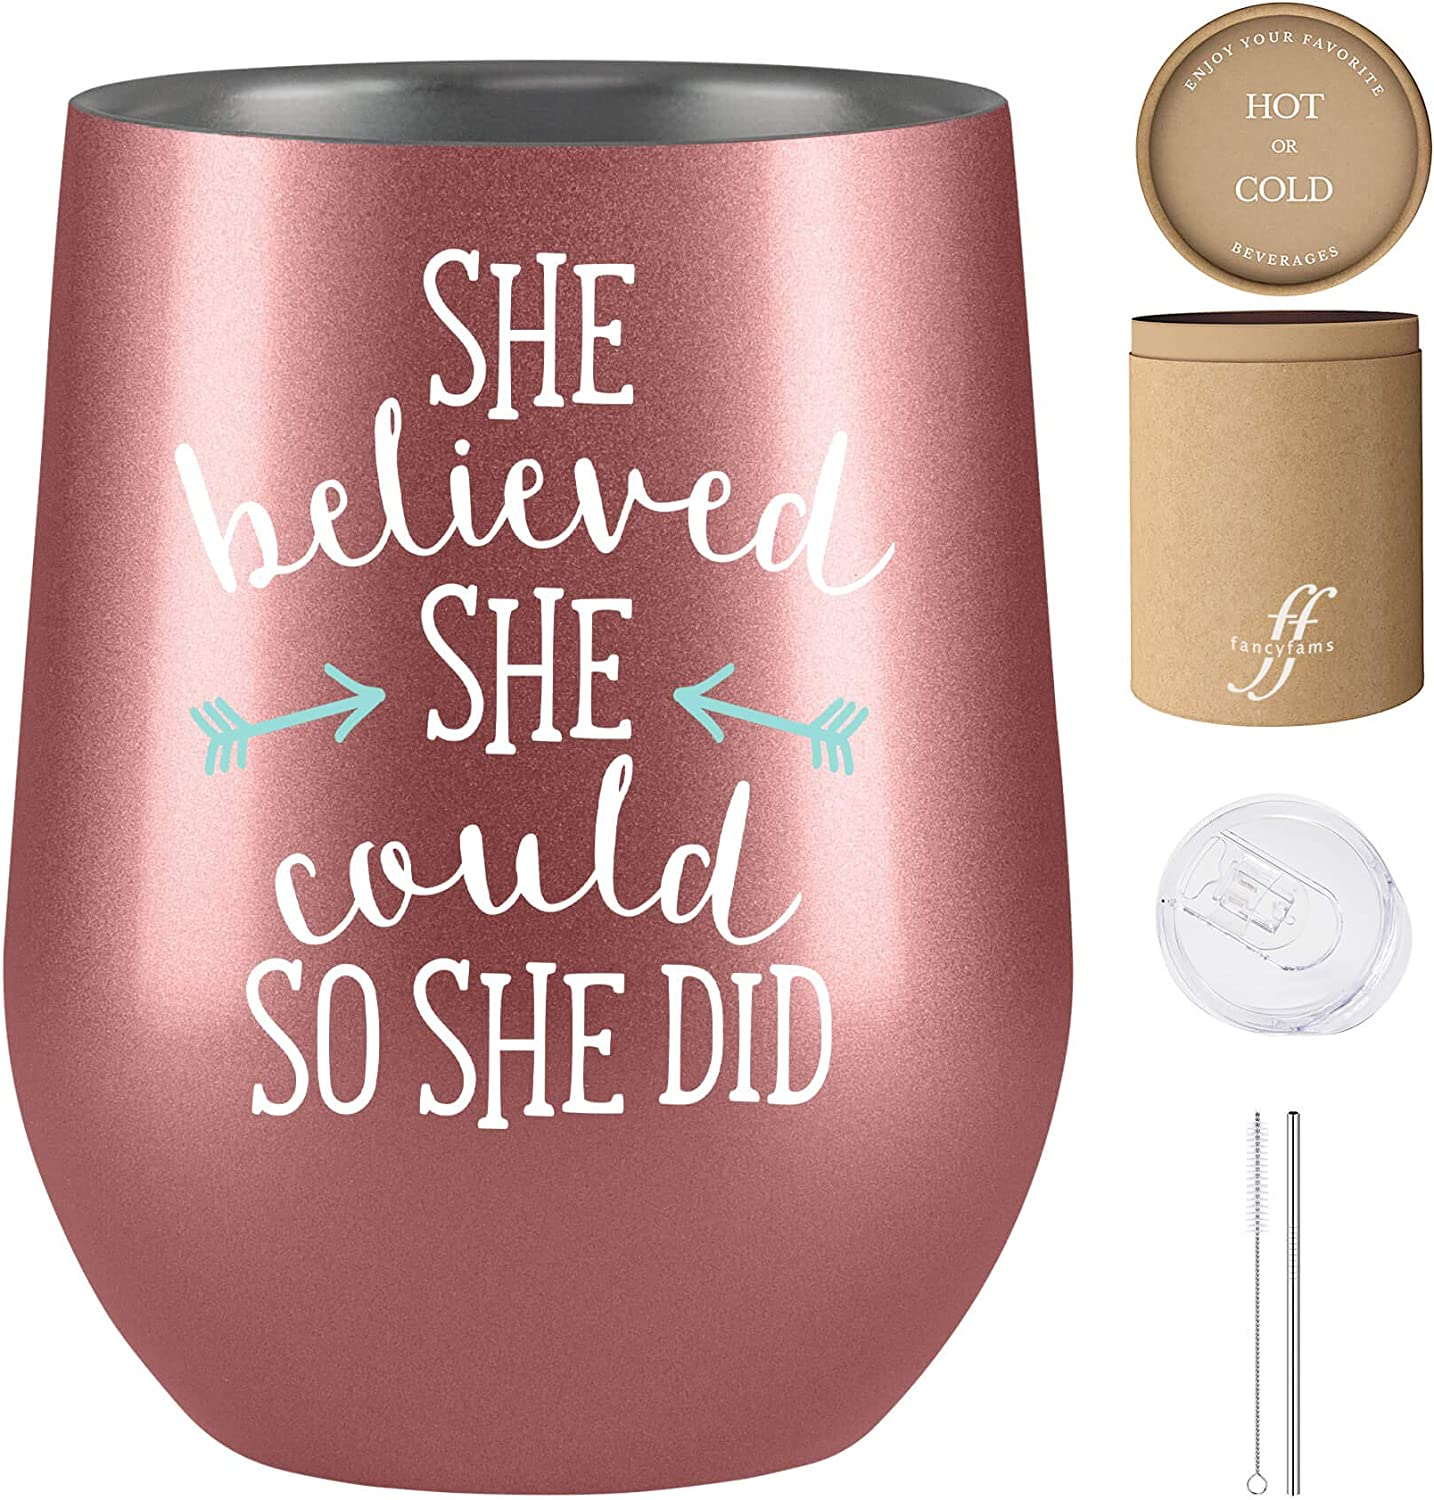 She Believed She Could So She Did - Congratulations Gifts - Graduation Gifts for Her - 12 oz Stainless Steel Wine Tumbler (Rose Gold)